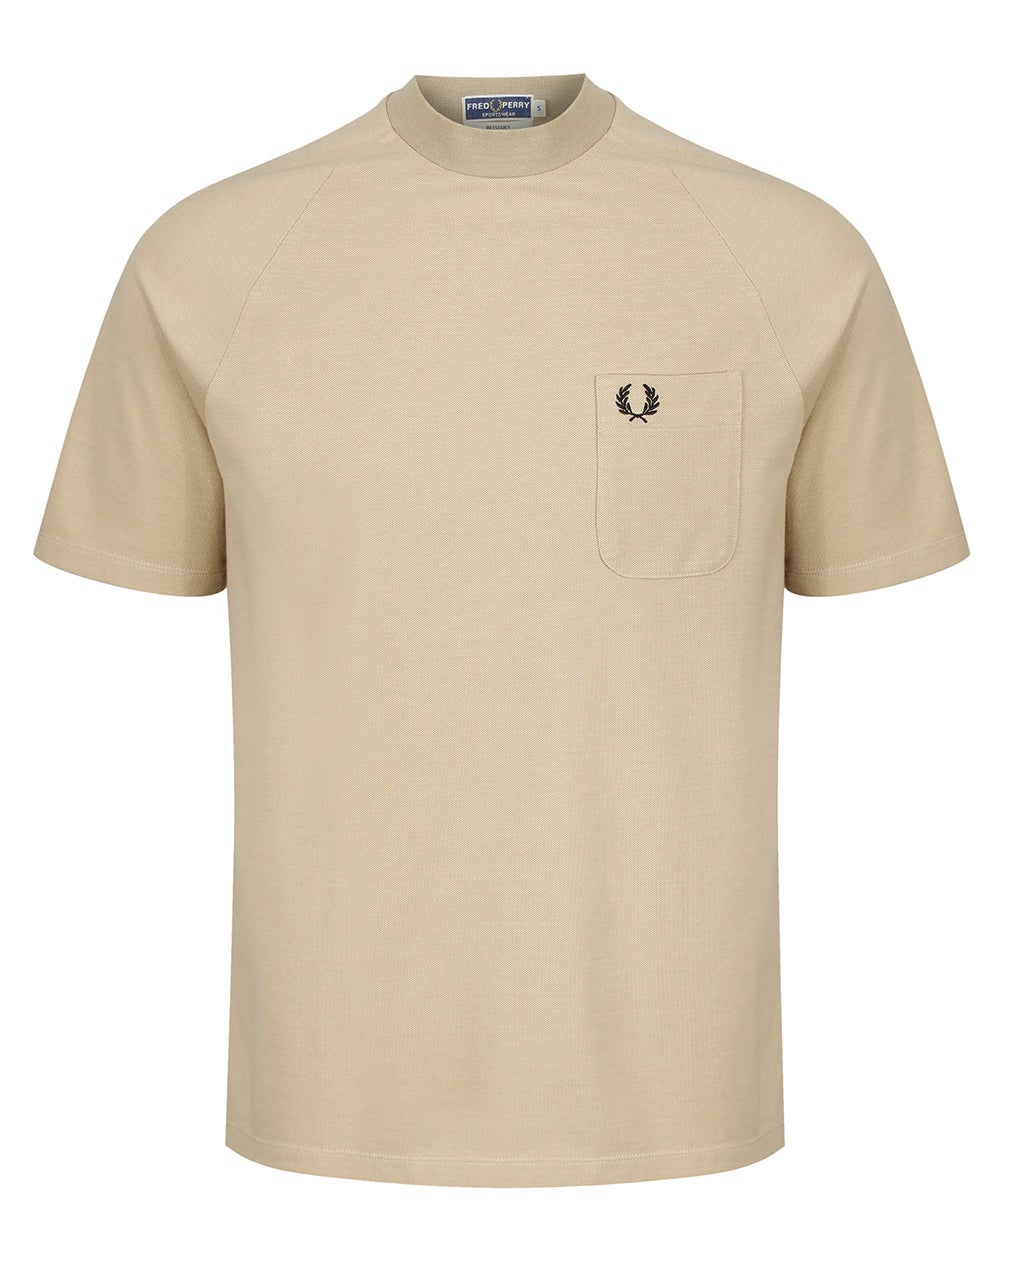 Fred Perry Re Issues Two Tone Pique Kurzarm-T-Shirt